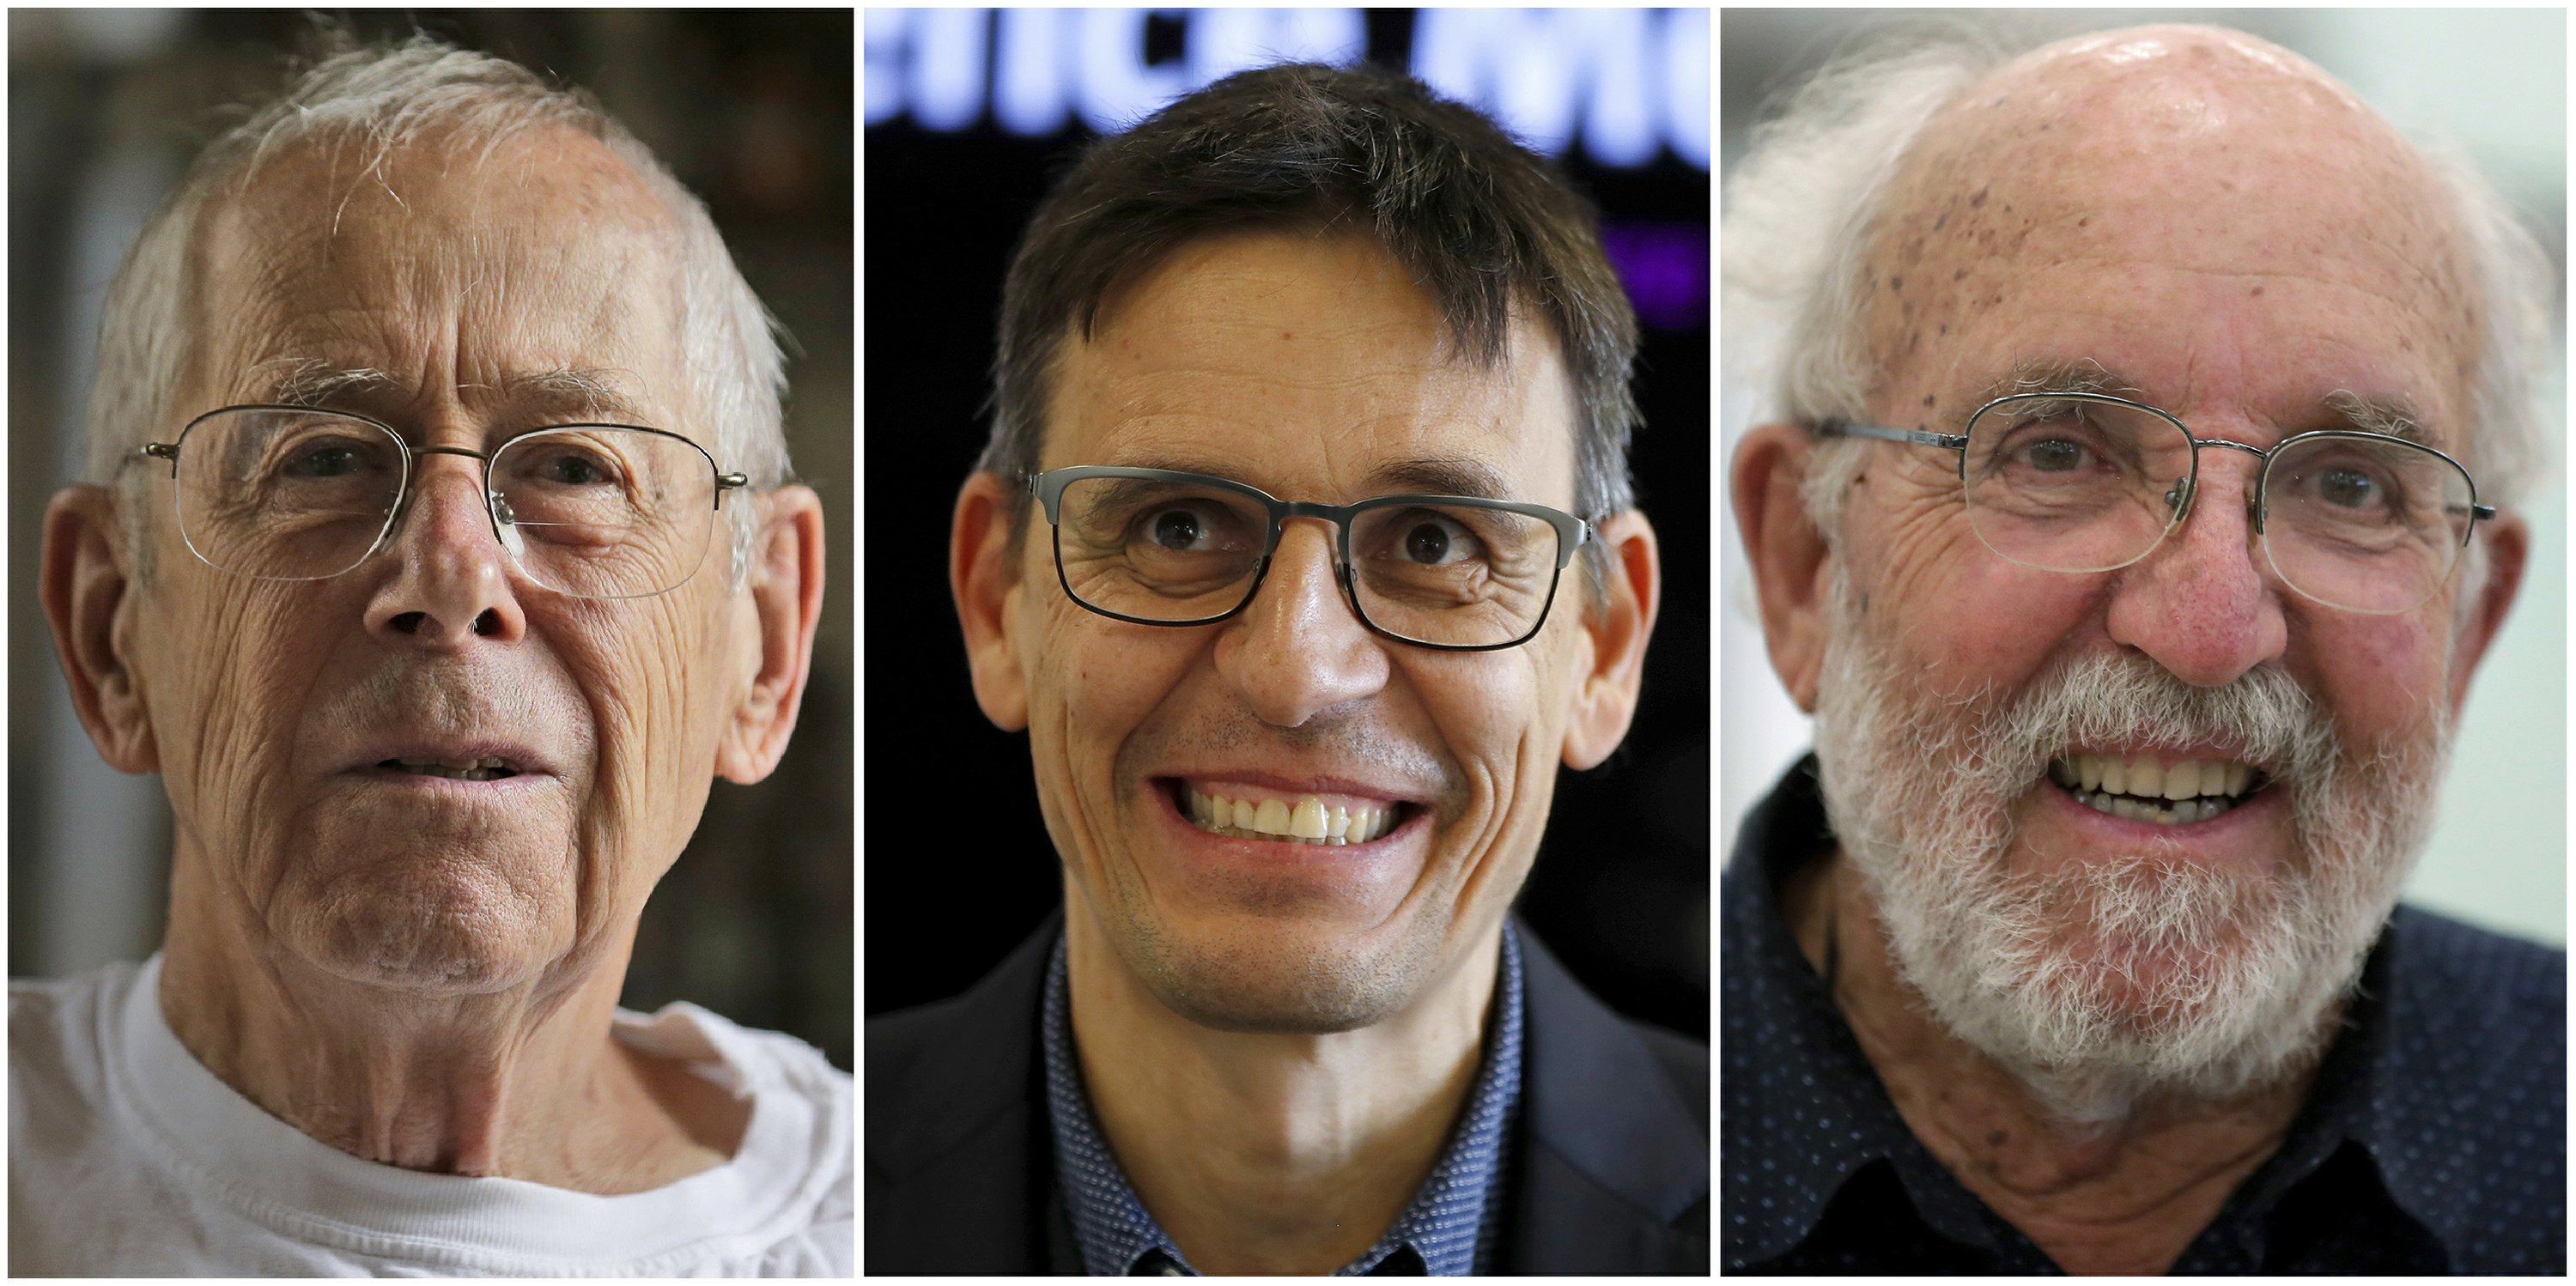 Are we alone? Nobel Prize goes to 3 who tackled cosmic query